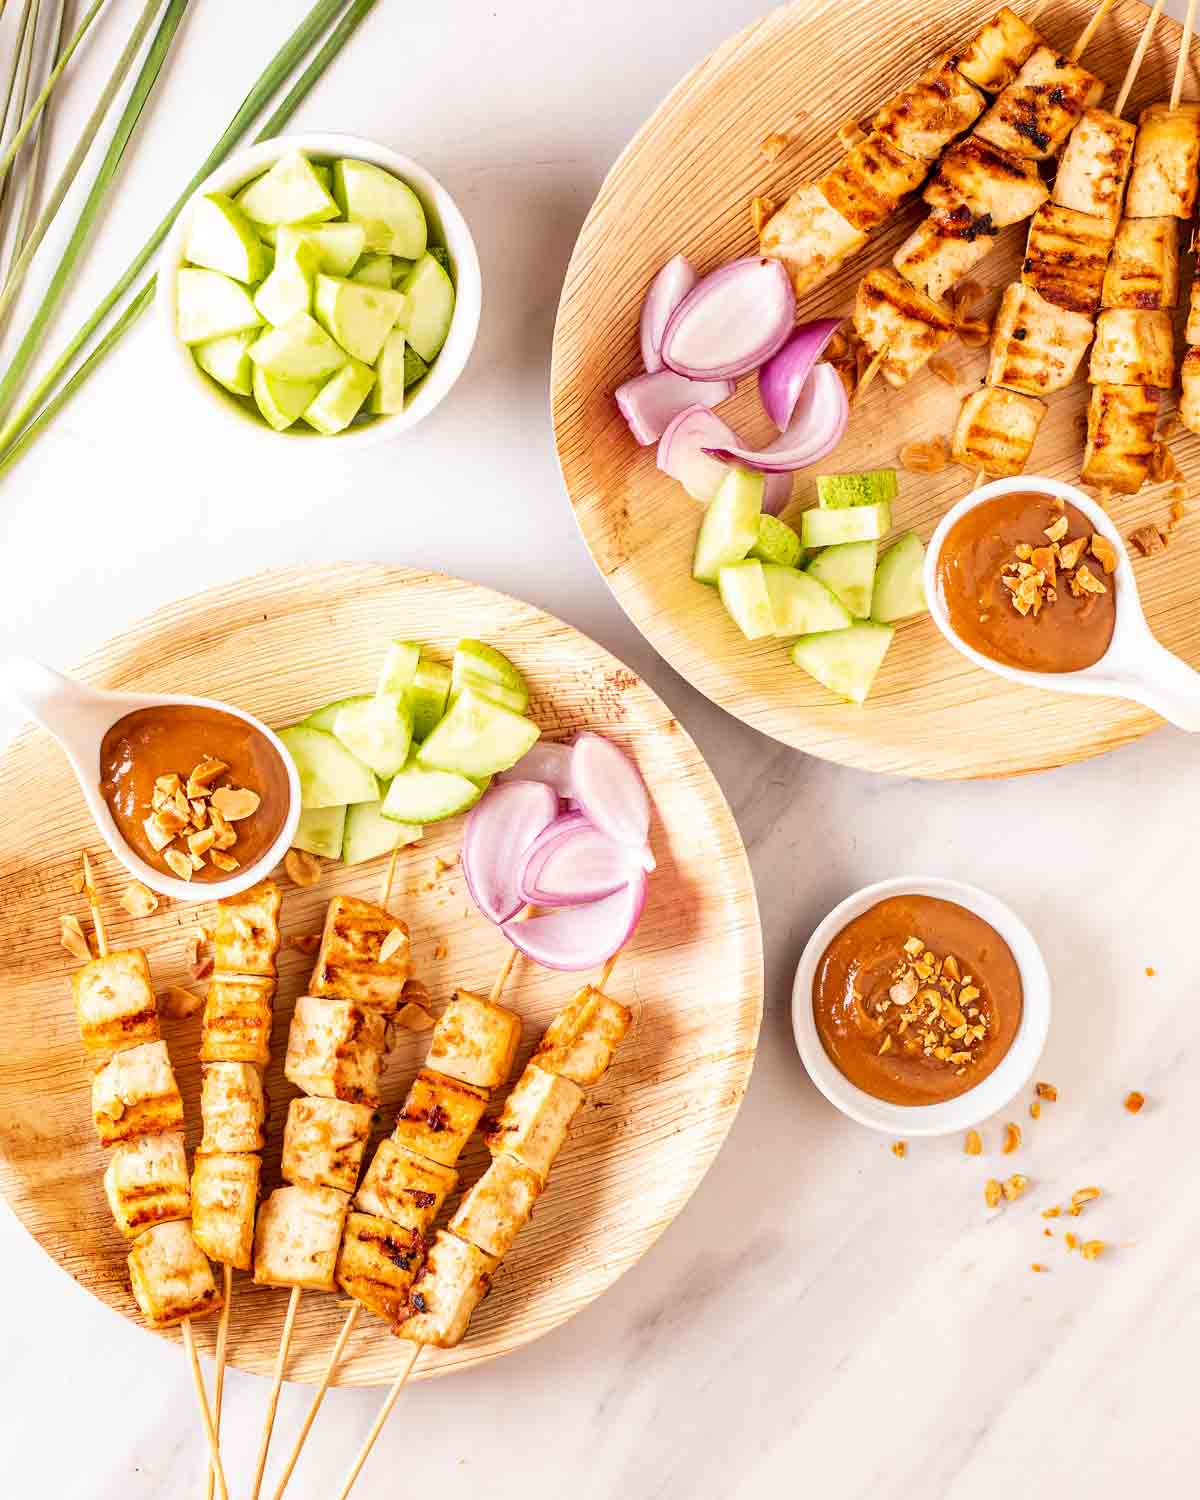 2 plates of tofu skewers served with peanut sauce with cucumber, lemongrass and peanut sauce in the background.